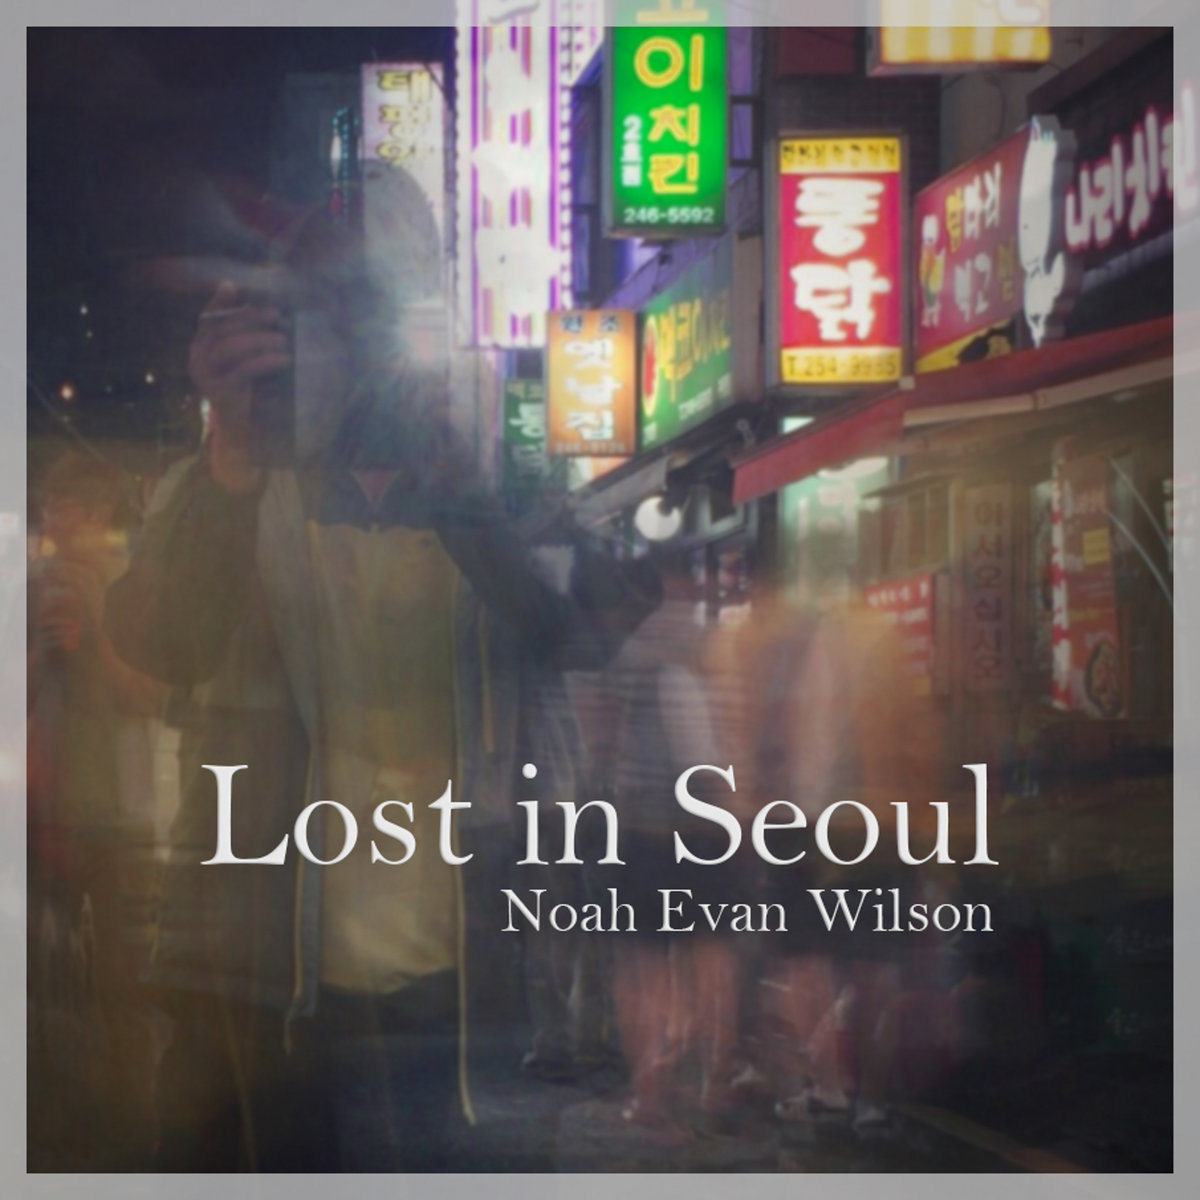 Lost in Seoul by Noah Evan Wilson